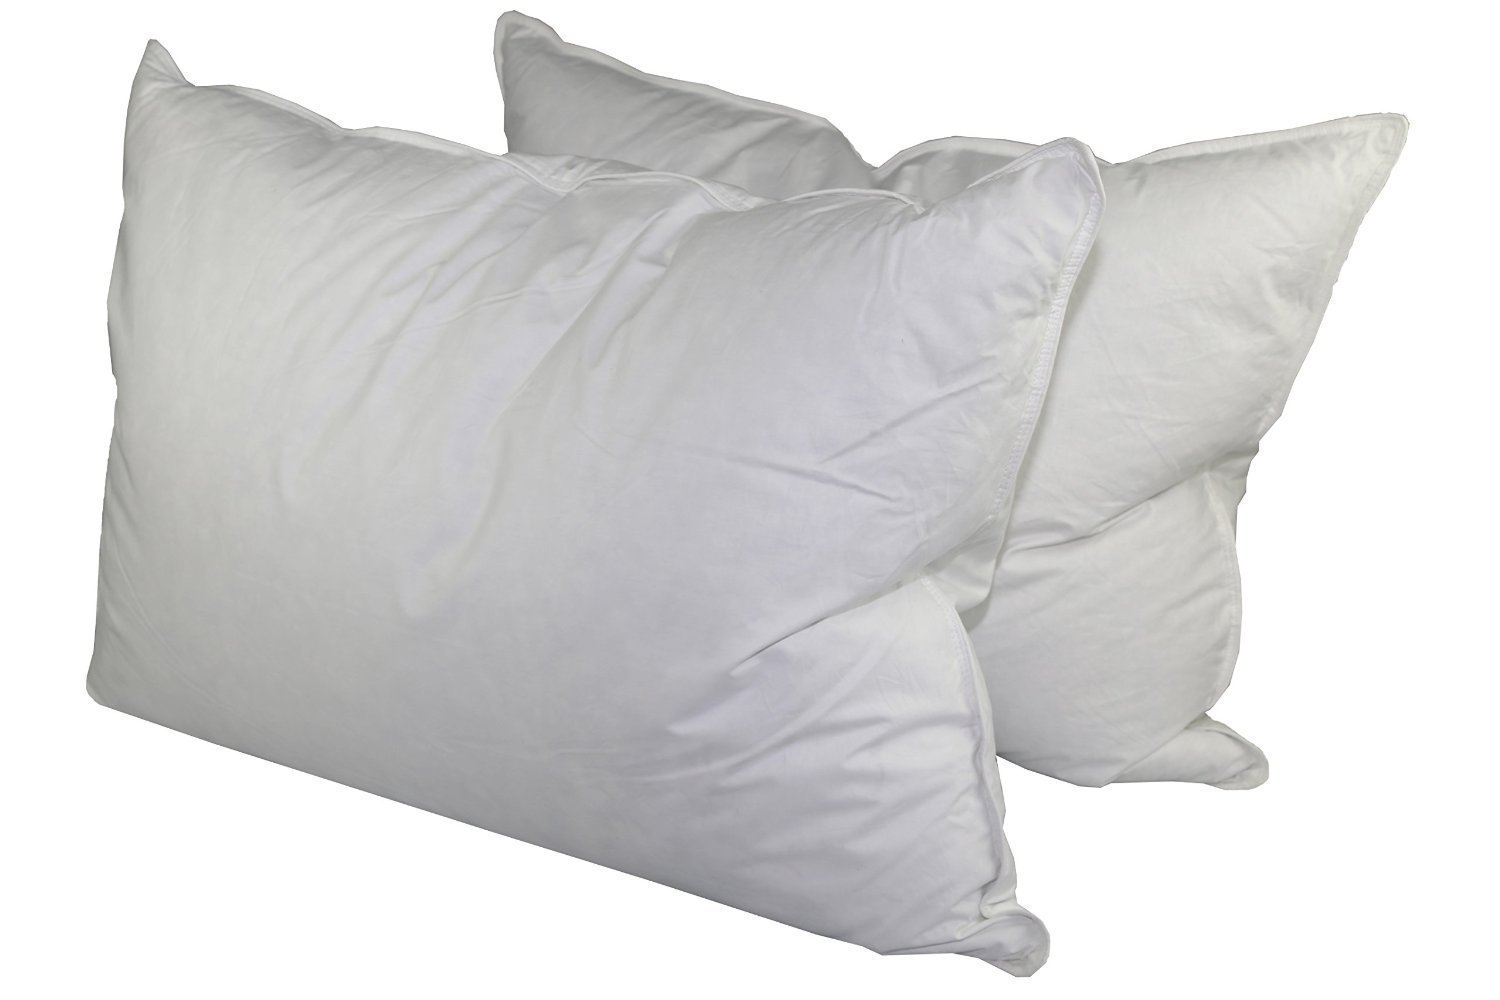 75% White Goose Feather / 25% White Goose Down Queen Pillow Set (2 Pillows) by Phoenix Down